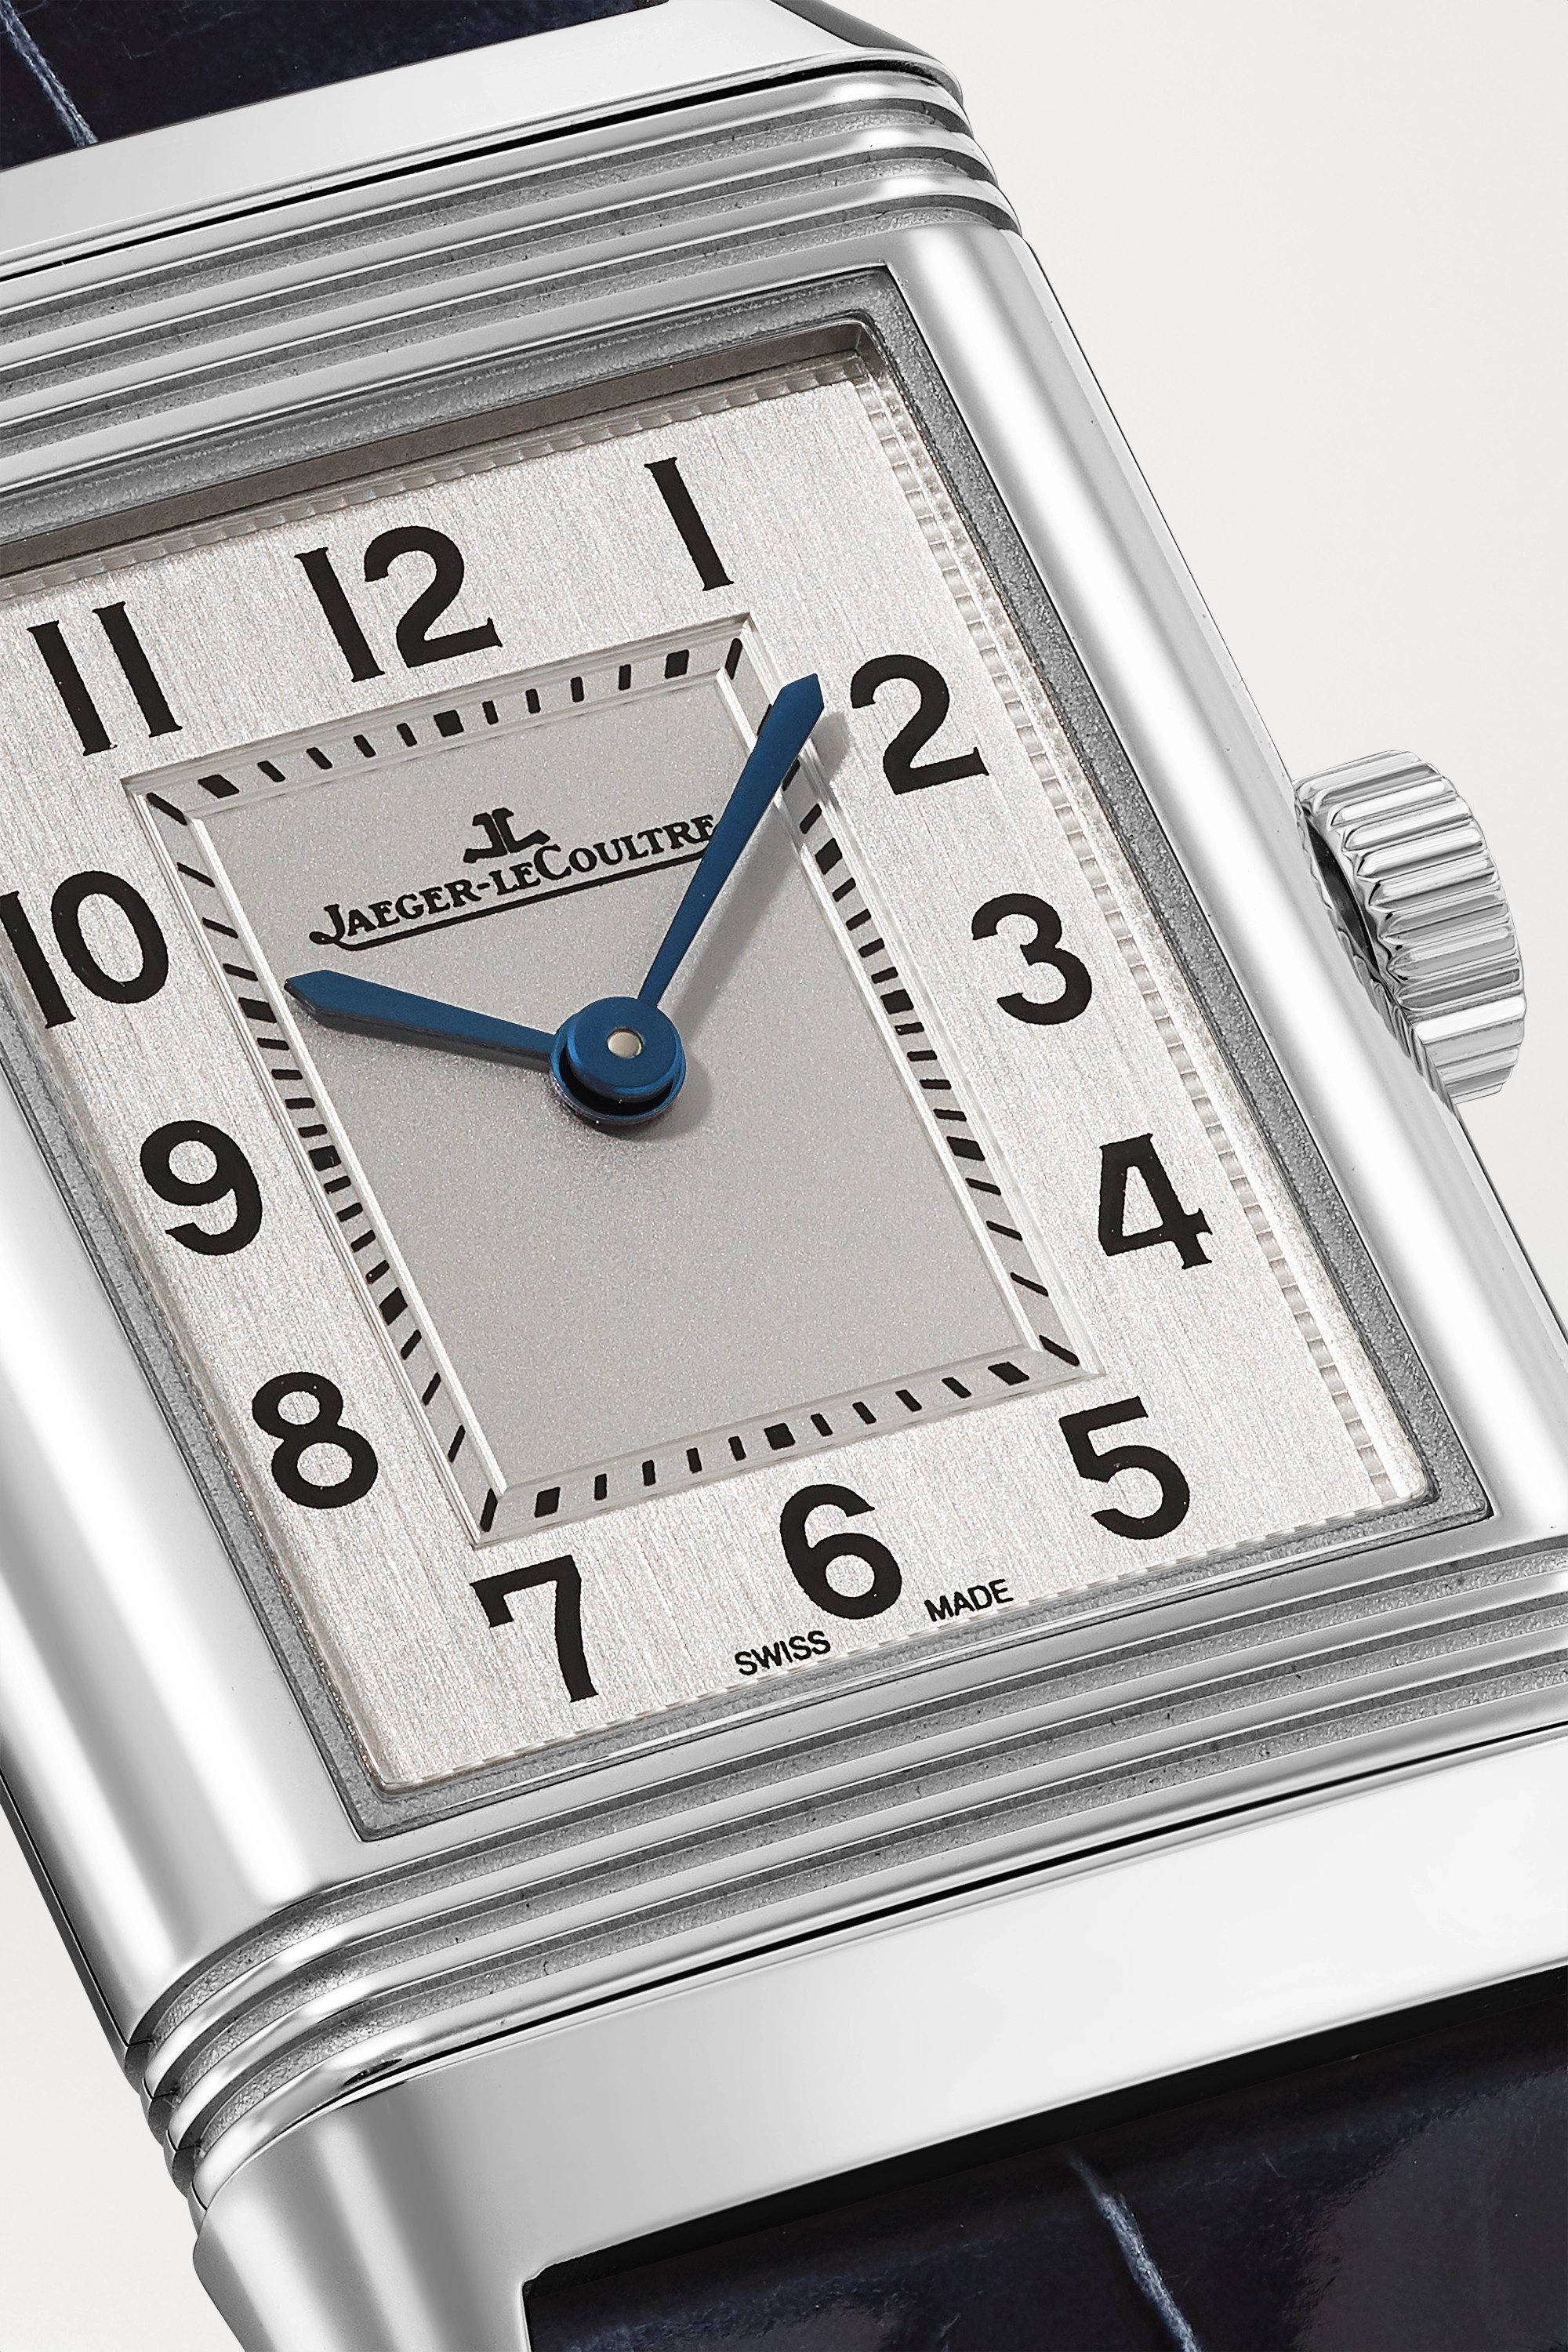 Jaeger-LeCoultre Reverso Classic 21 毫米精钢小号腕表(短吻鳄鱼皮表带)